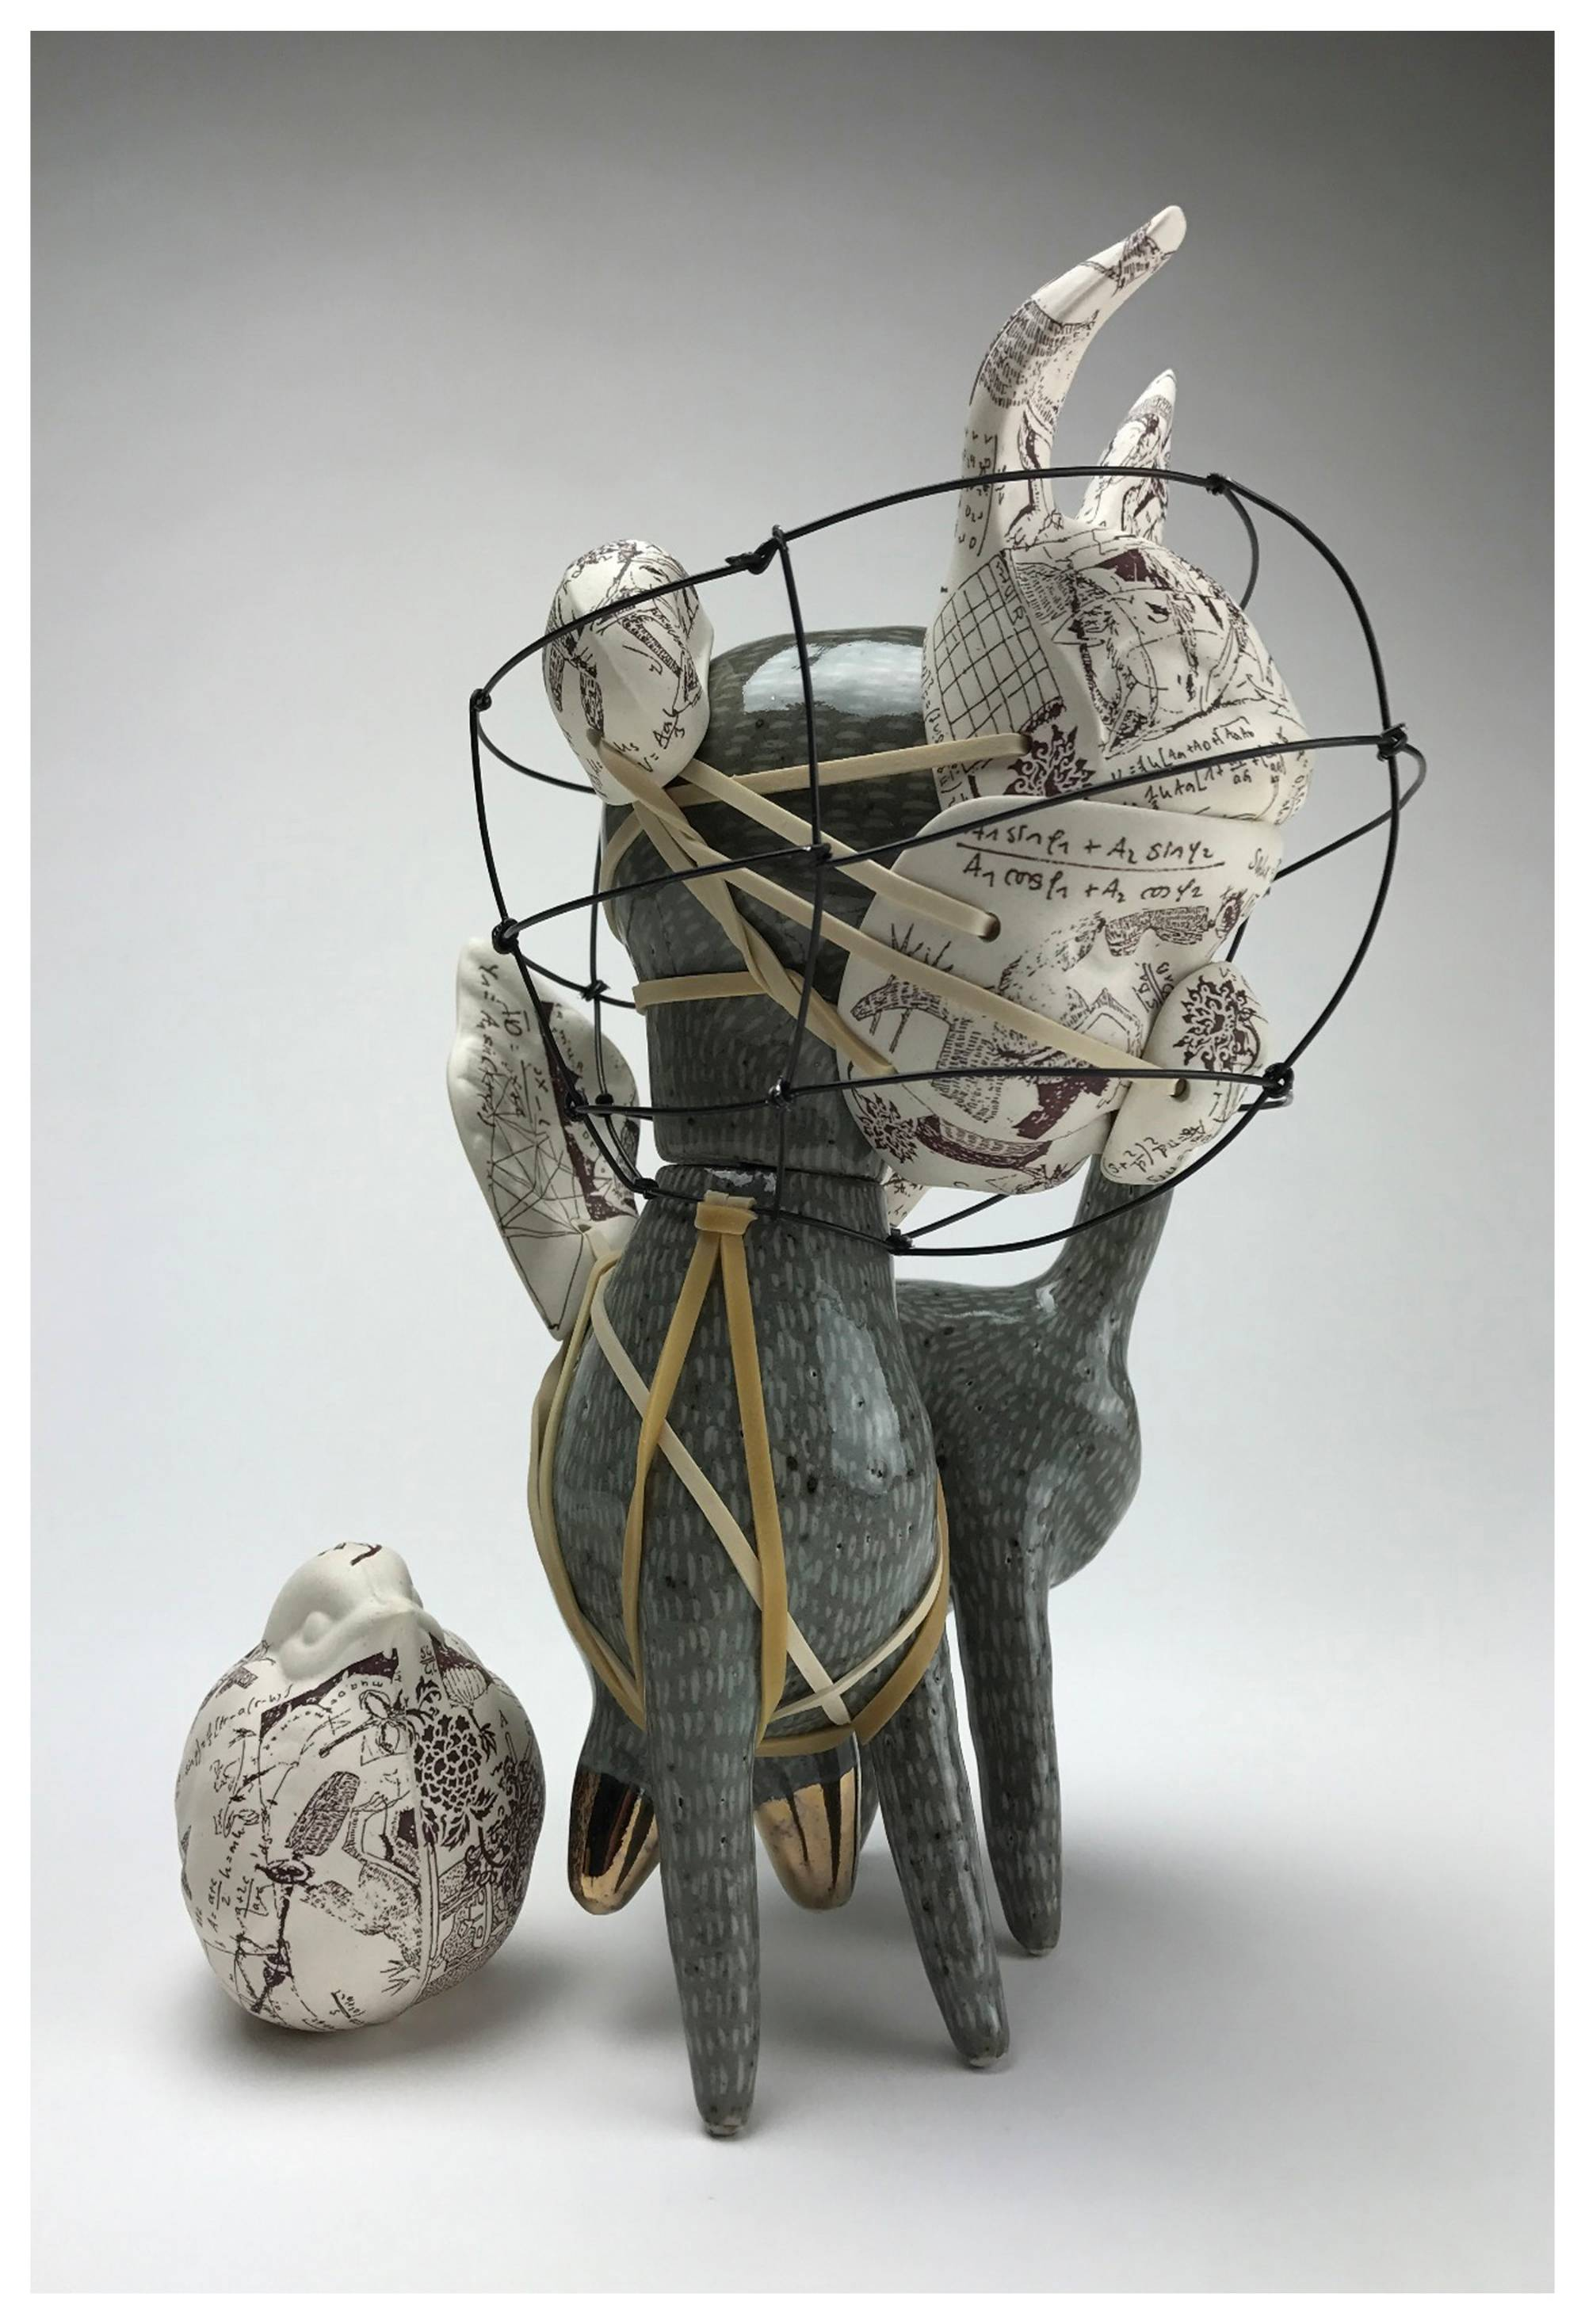 Ceramic Dog with wire cone around head